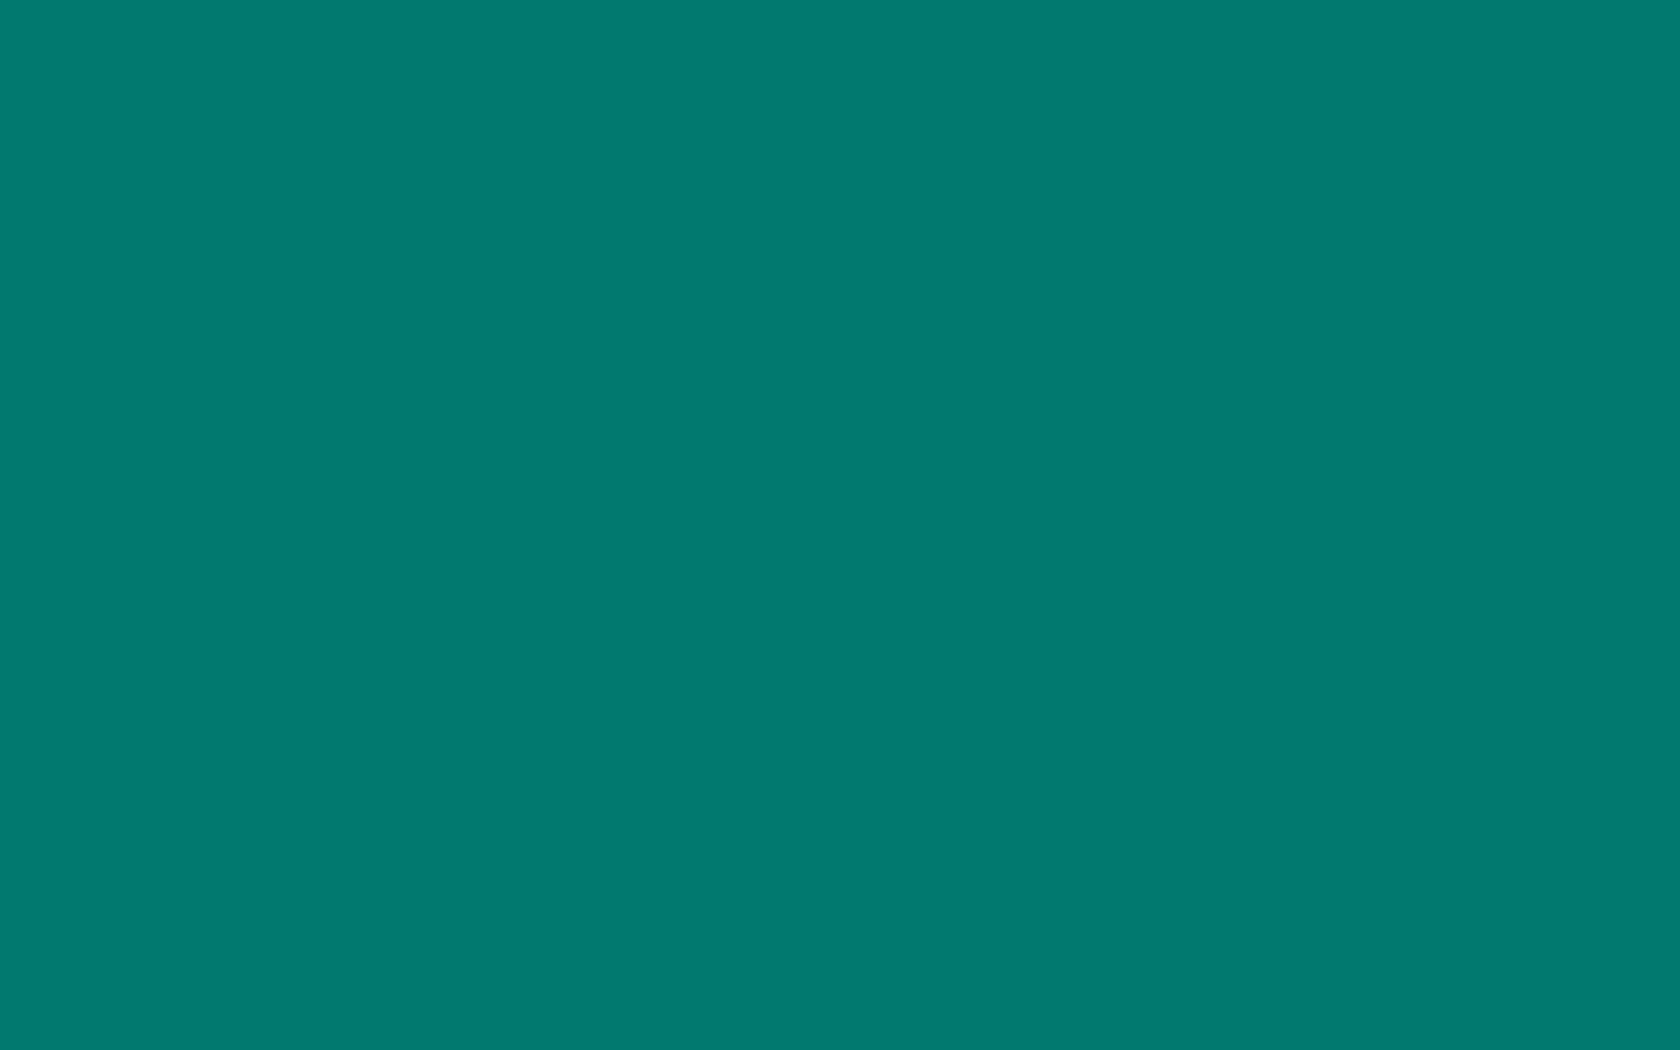 1680x1050 Pine Green Solid Color Background